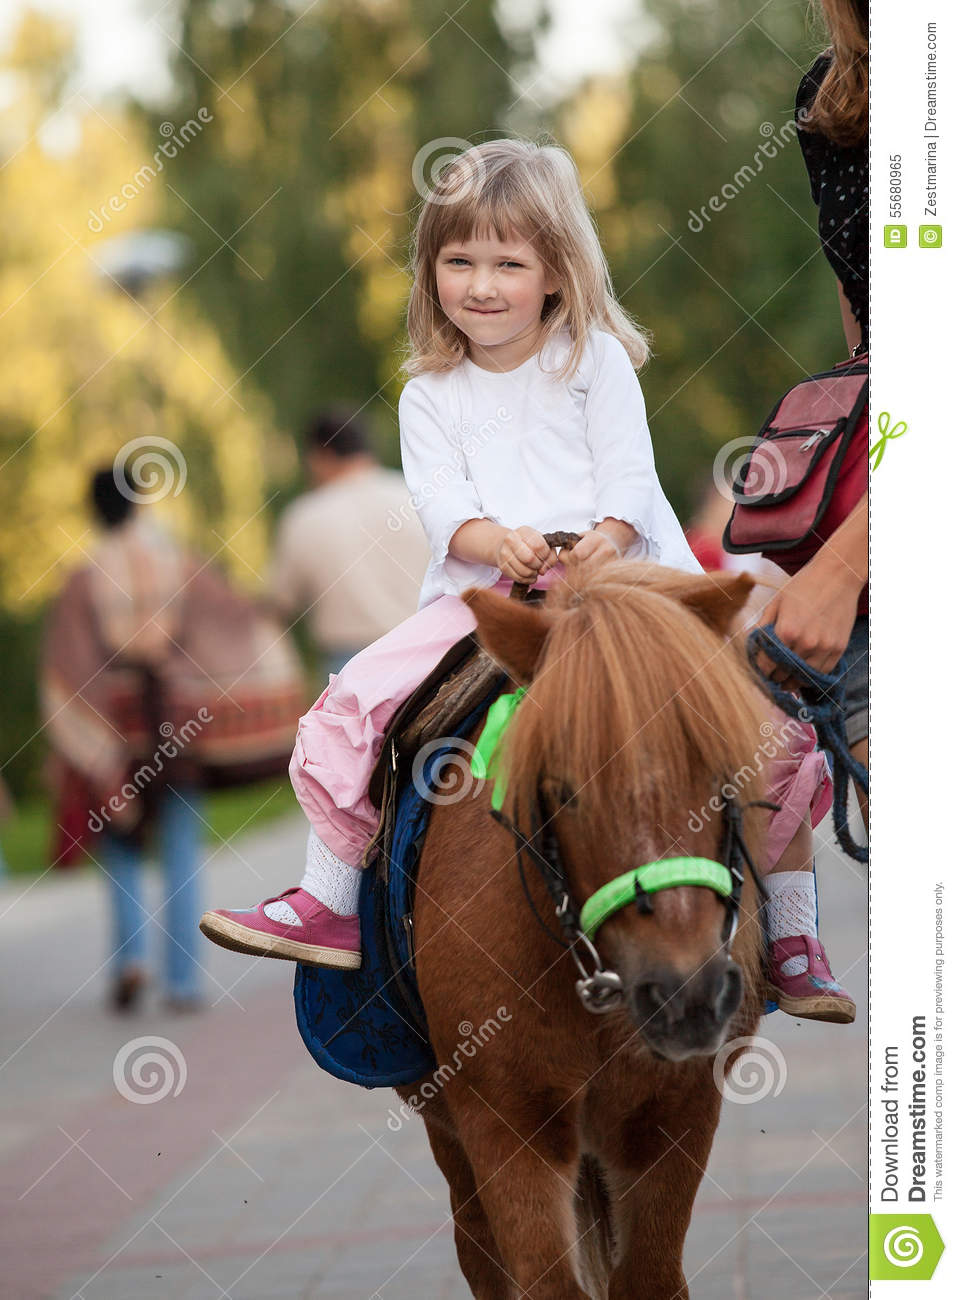 Happy smiling little girl on a pony